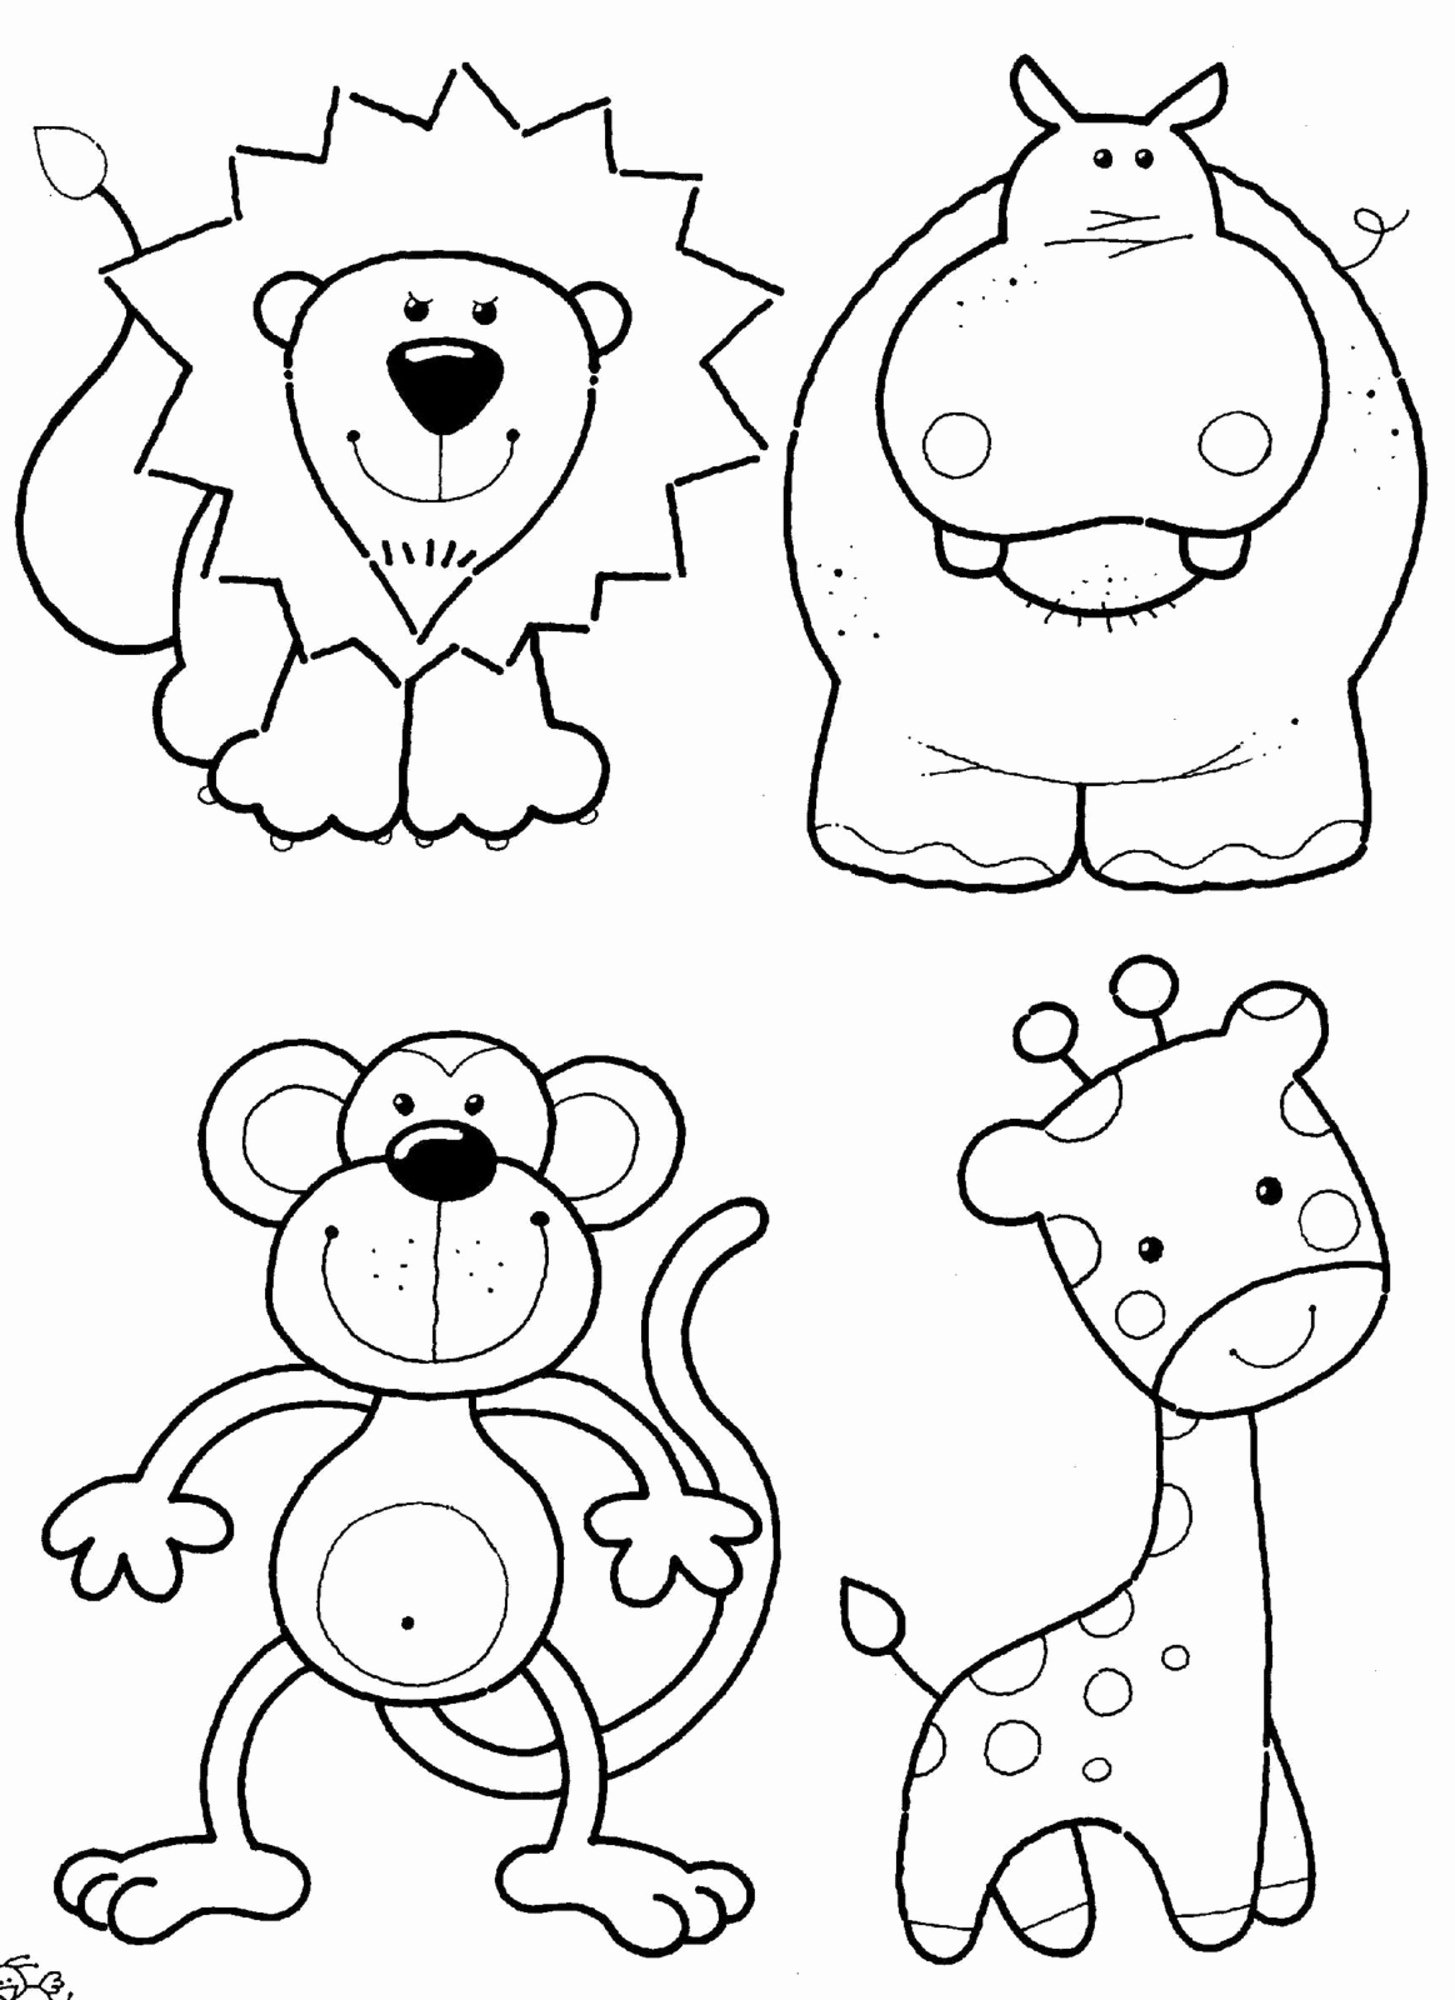 Animal Worksheets for Preschoolers Fresh Coloring Book Cute Animals Zoo Fabulous for themed Math